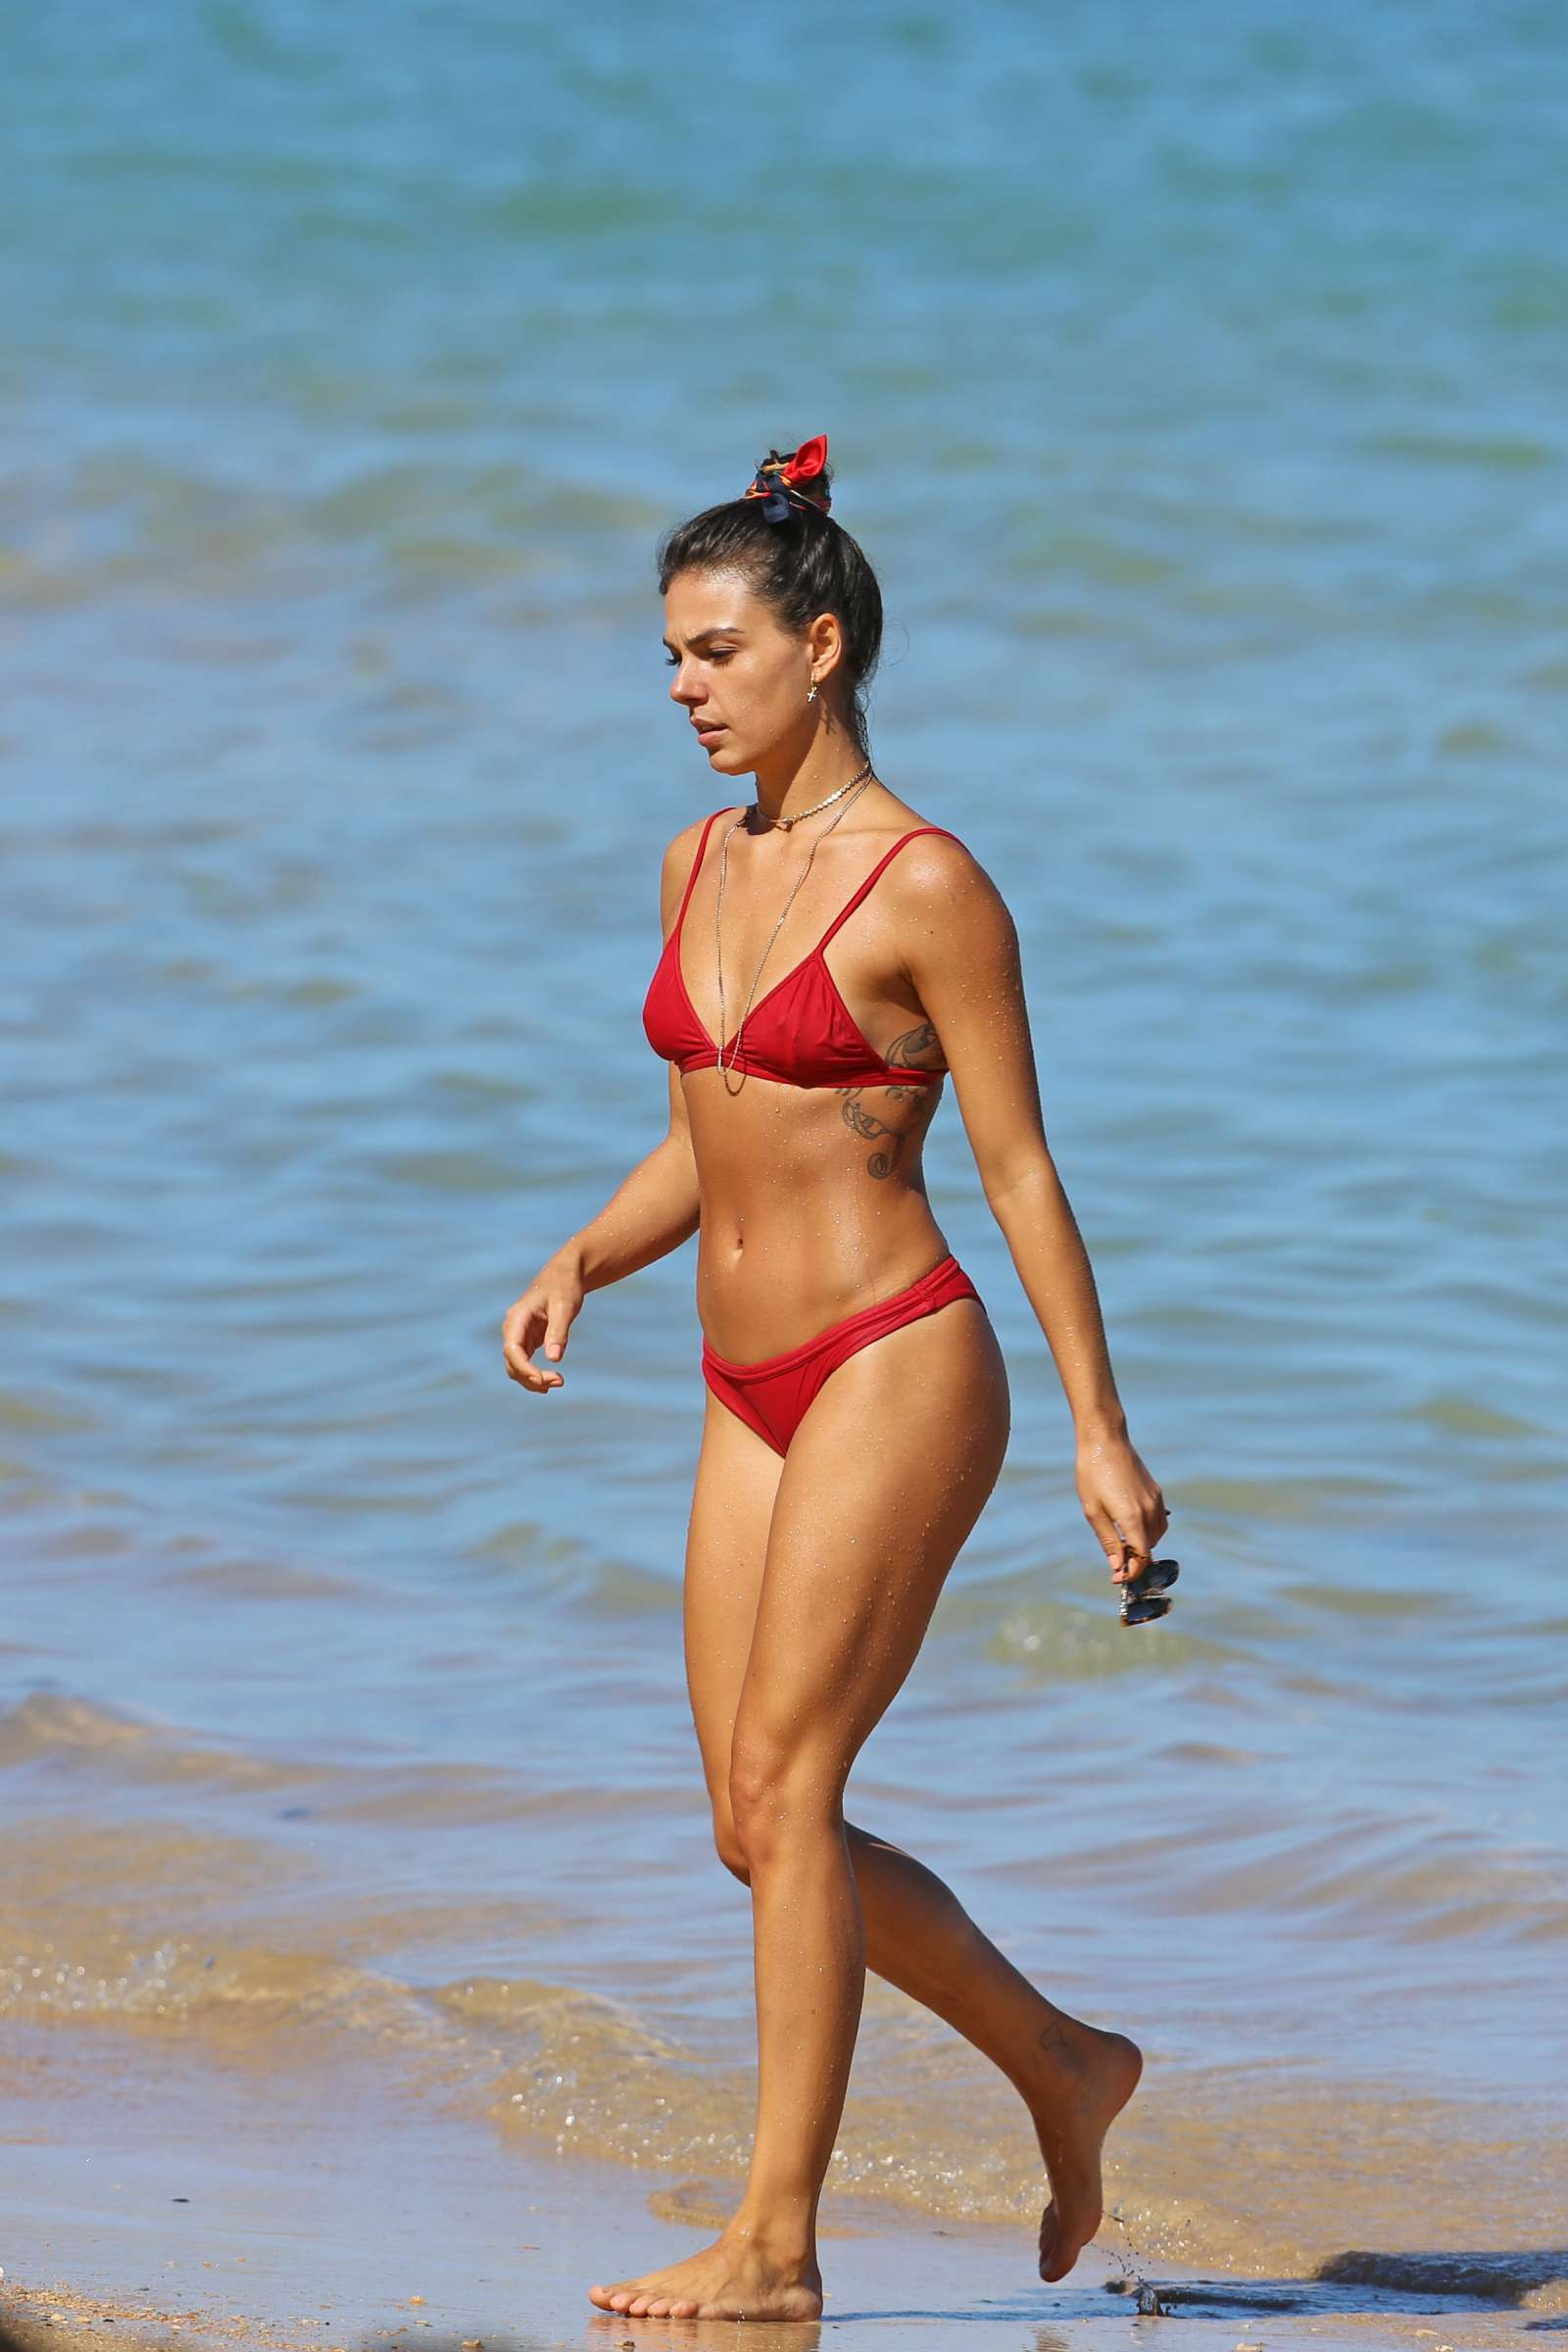 Isis Valverde in Red Bikini on the beach in Hawaii Pic 1 of 35